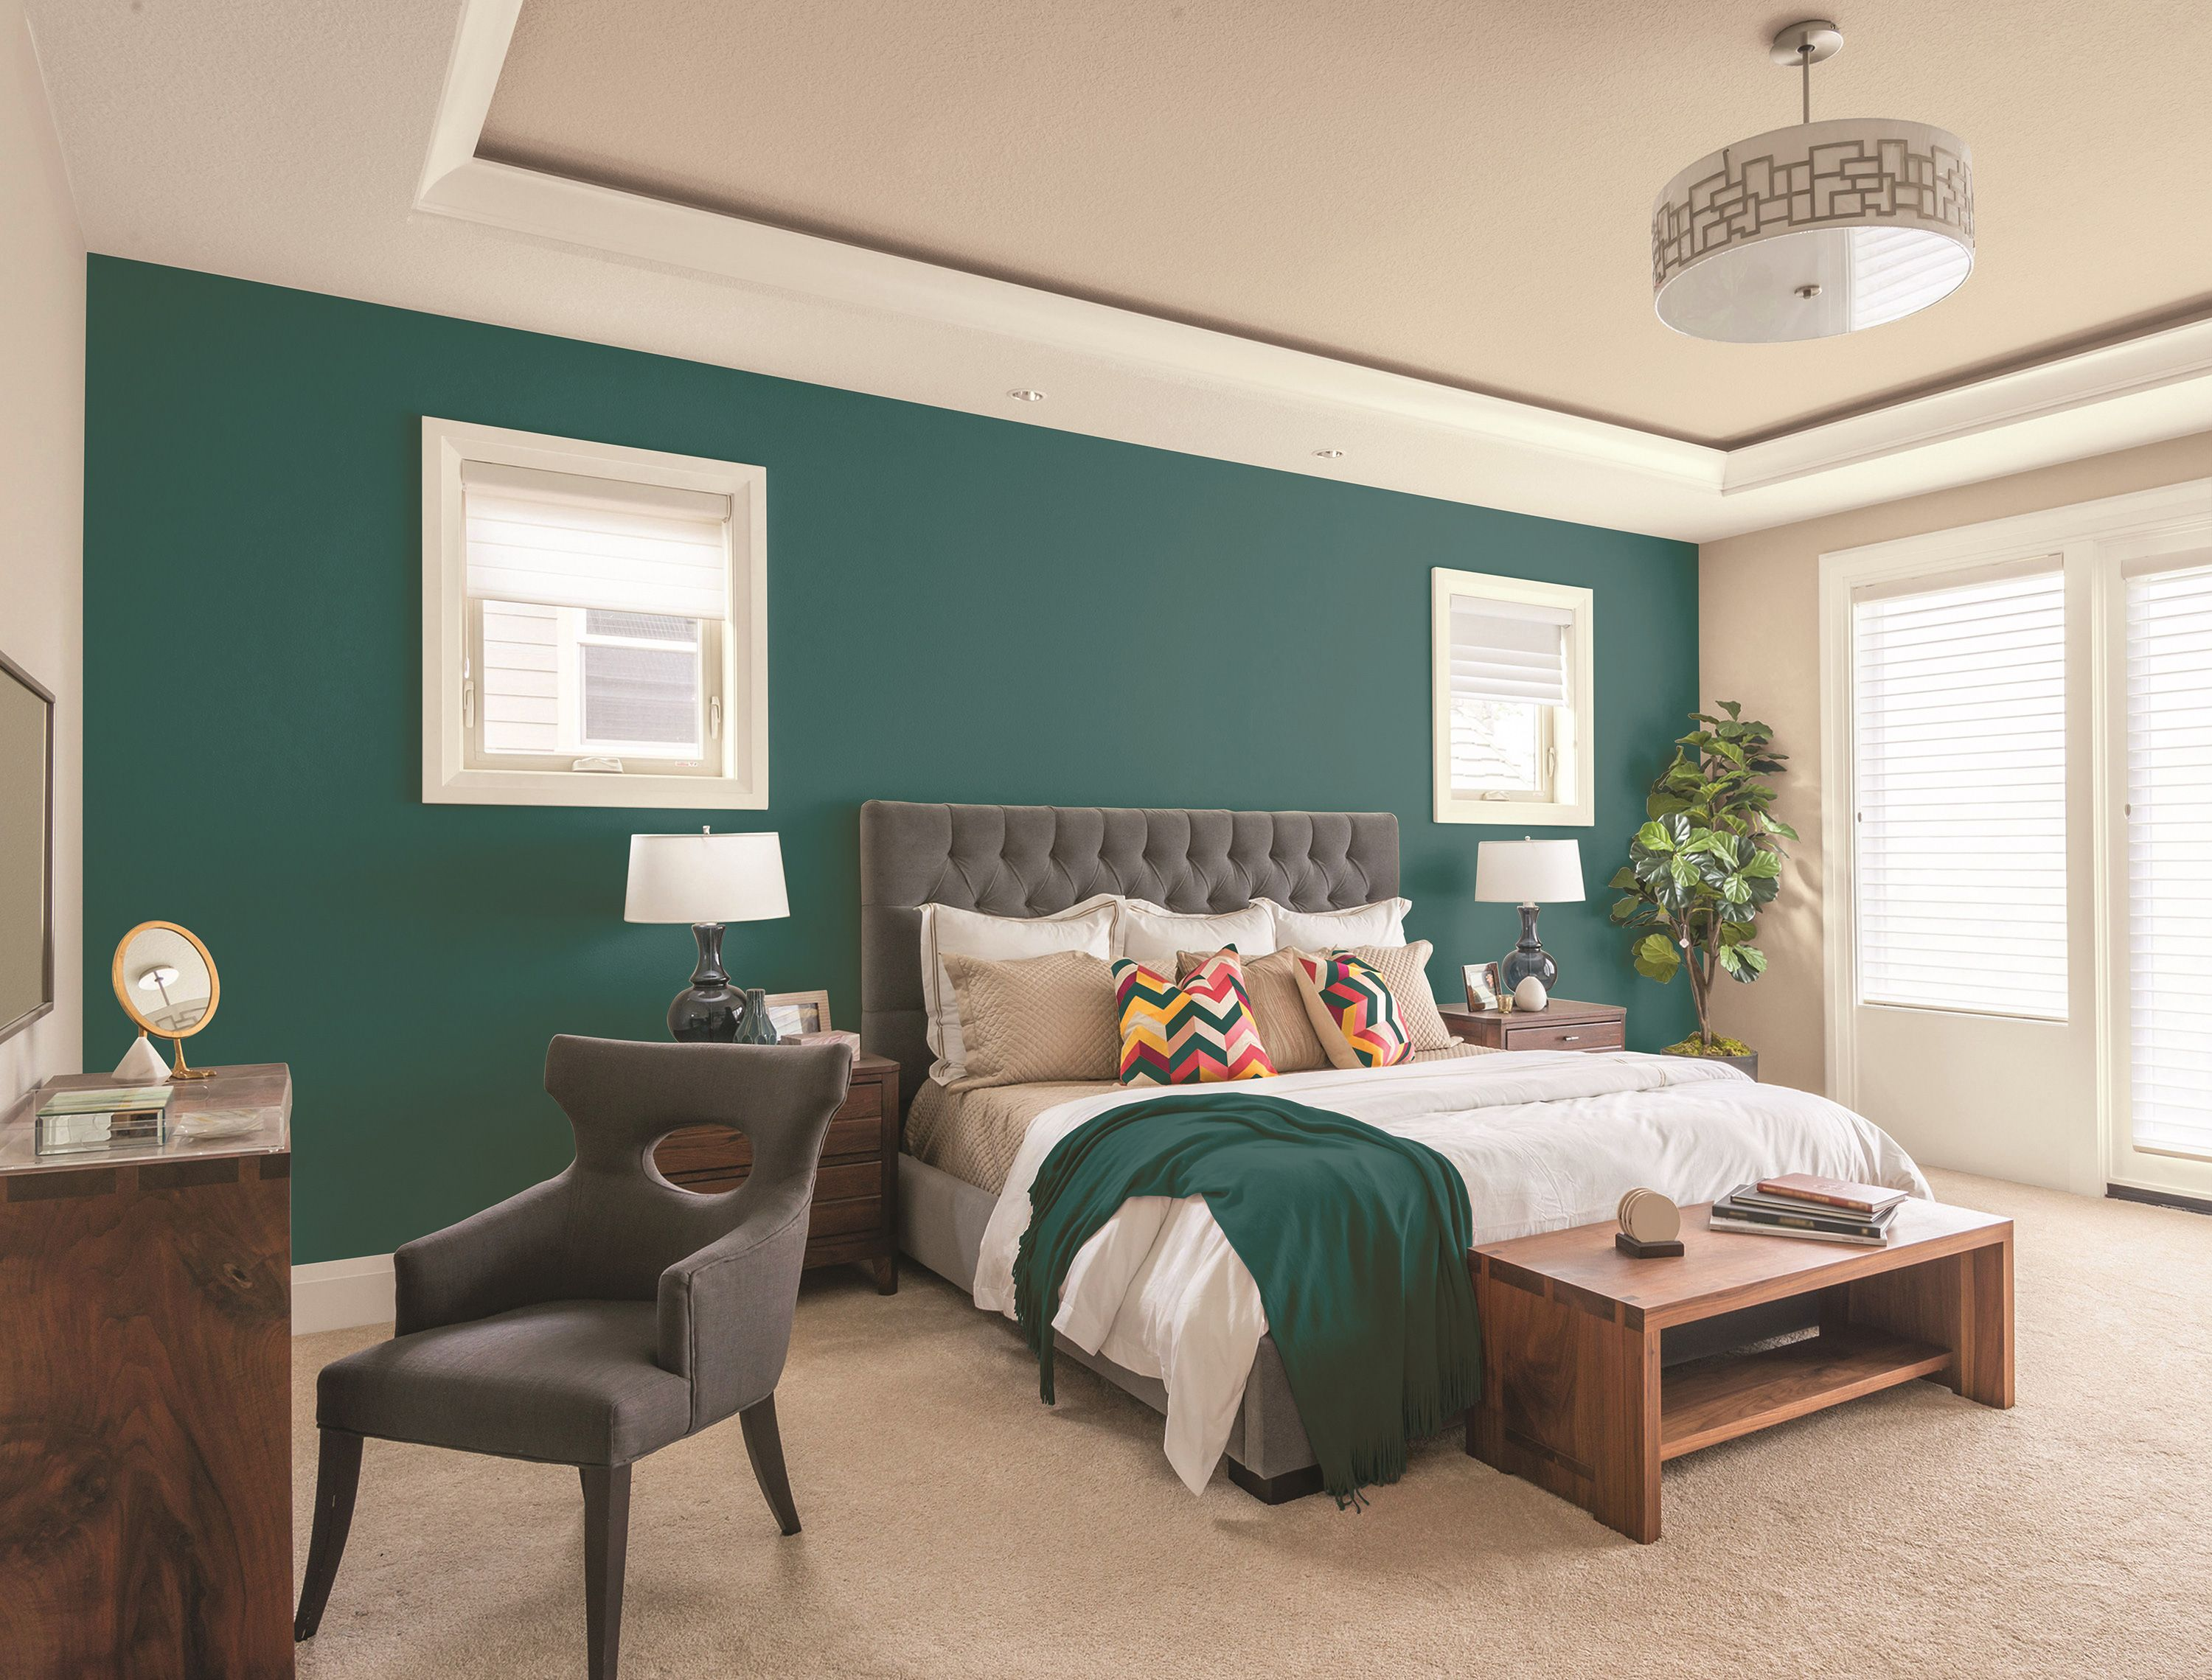 How To Choose An Accent Wall Accent Walls In Living Room Accent Wall Bedroom Living Room Colors